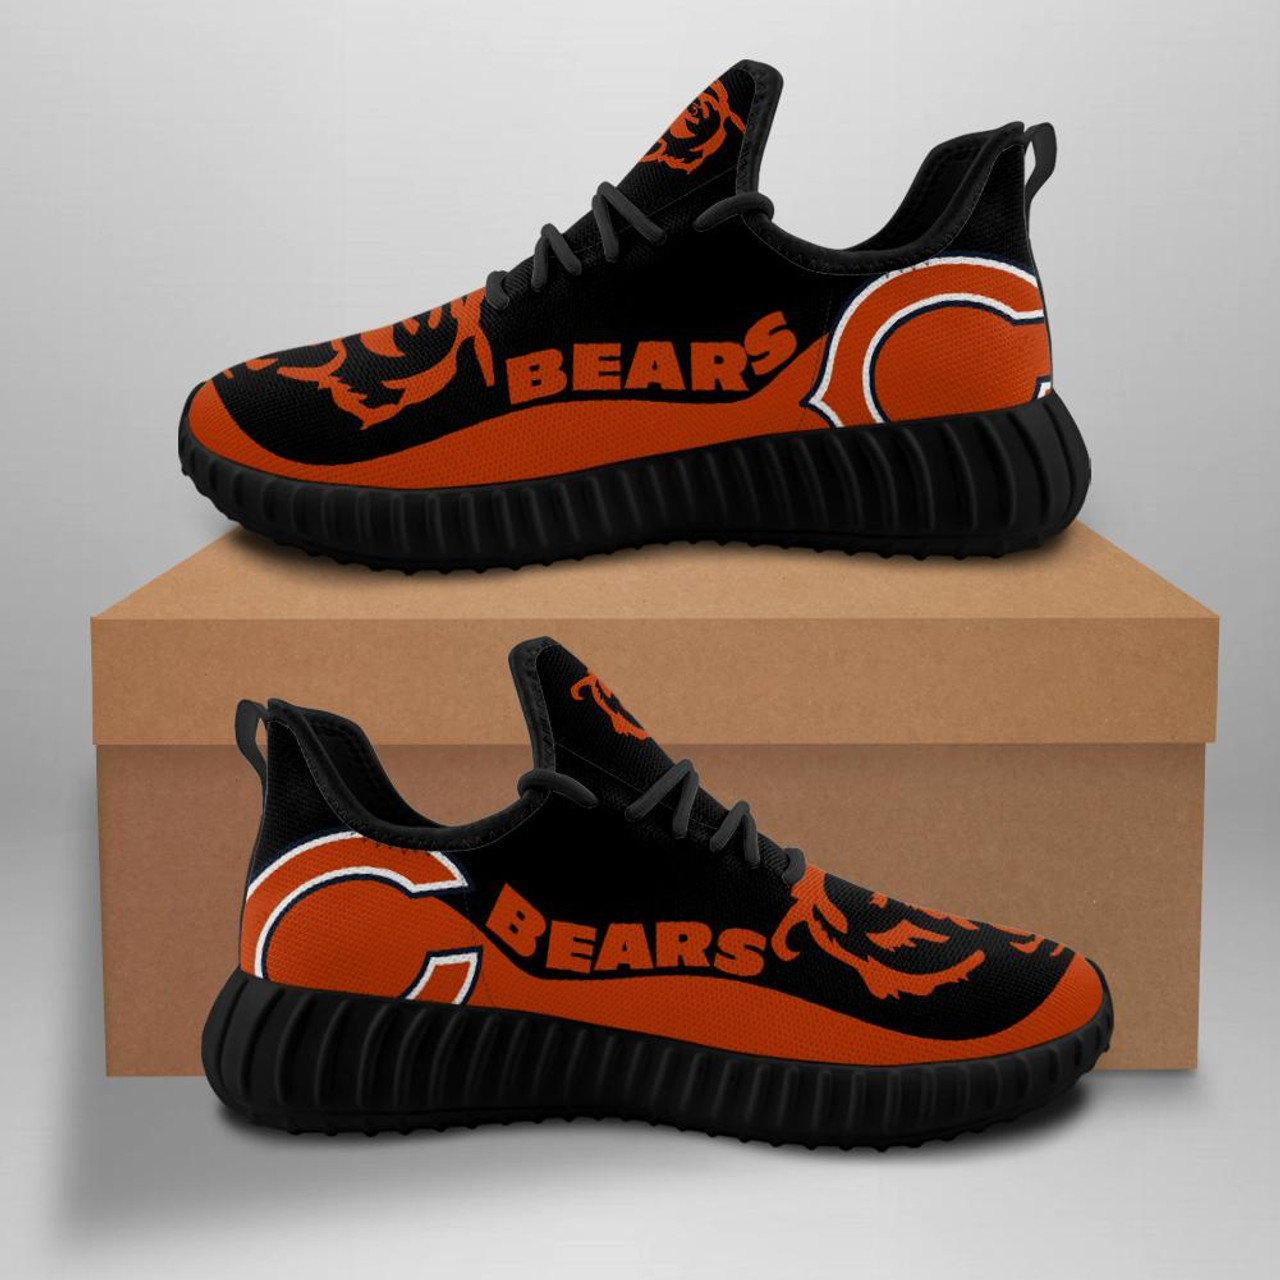 **(OFFICIAL-CHICAGO-BEARS-TEAM-BLACK-FASHION-SPORT-SHOES/CUSTOM-DETAILED-3D-GRAPHIC-PRINTED-DOUBLE-SIDED-DESIGN/OFFICIAL-CUSTOM-BEARS-LOGOS & CLASSIC-OFFICIAL-BEARS-BLACK & ORANGE-TEAM-COLORS/TRENDY-PREMIUM-N.F.L.BEARS-TEAM-SPORT-SHOES)**